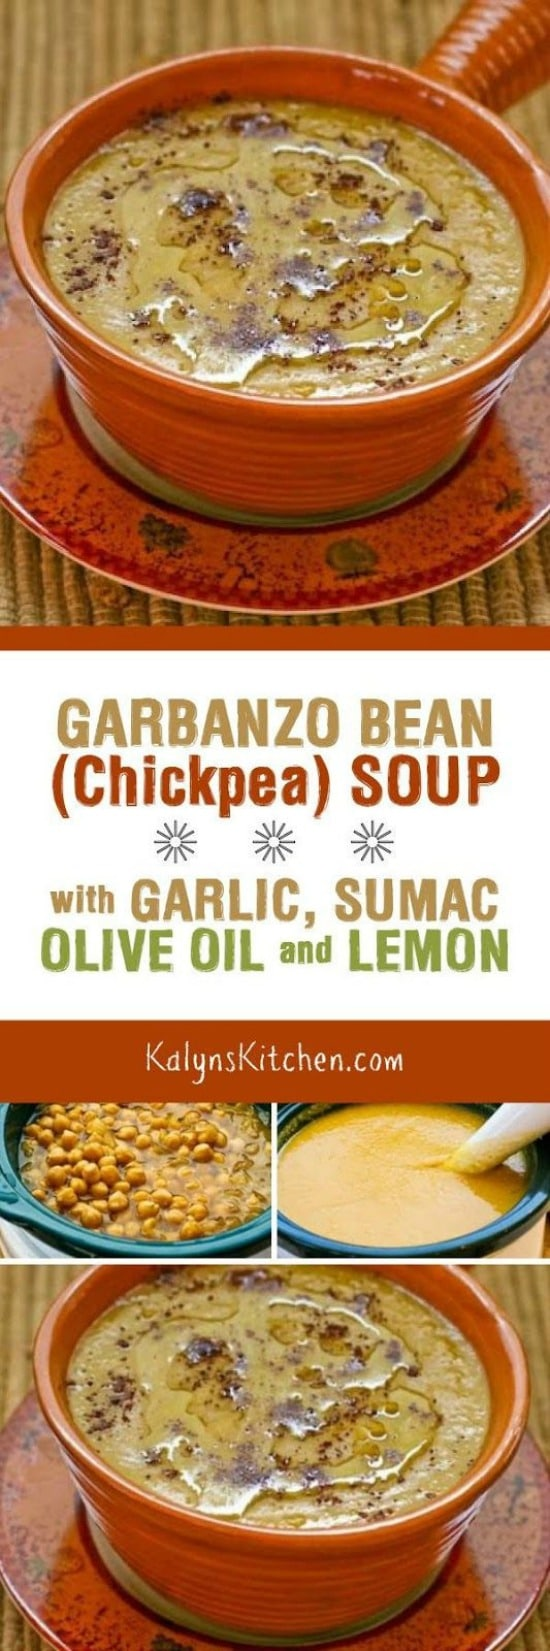 Garbanzo Bean (Chickpea) Soup with Garlic, Sumac, Olive Oil, and Lemon from KalynsKitchen.com